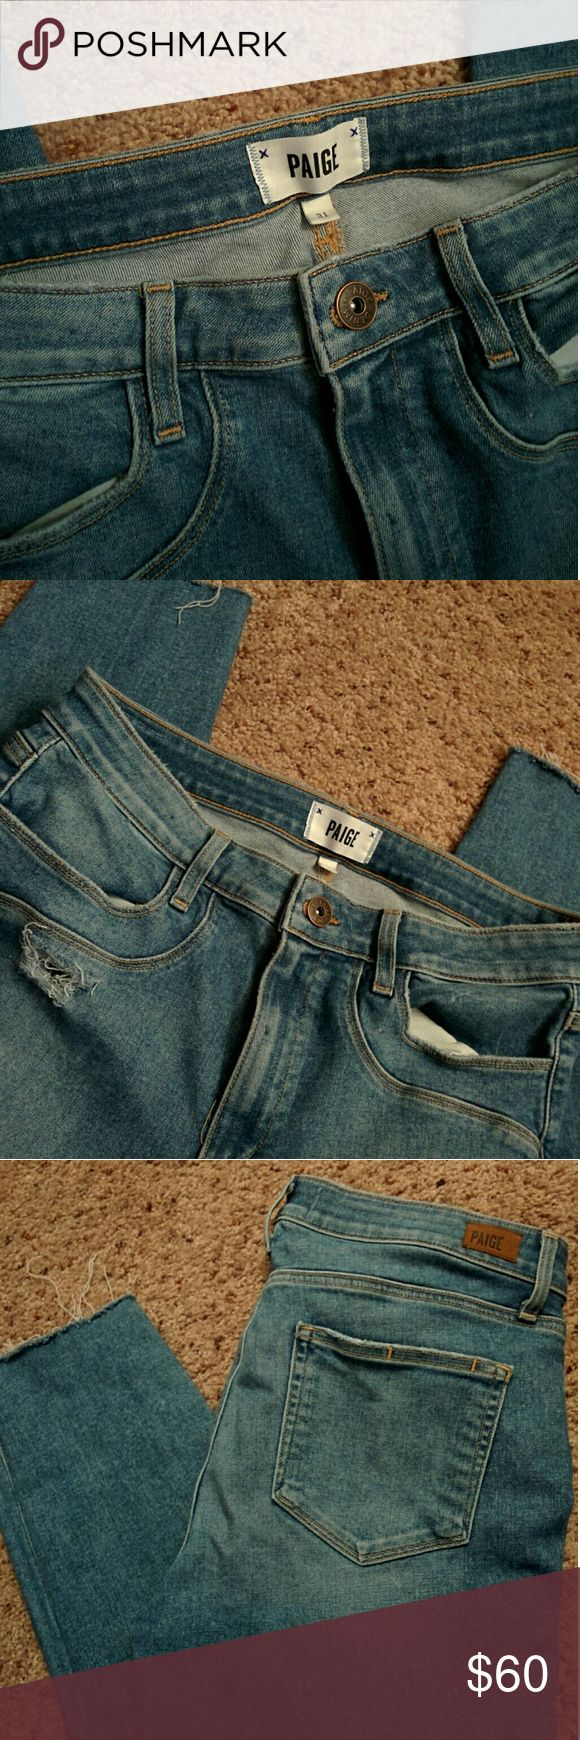 Paige Jeans 🚩🚩 flash sale for 30🚩🚩🚩 Barely worn Paige high waisted ankle cut skinny jeans in a size 31! Very cute to wear a bodysuit or crop top with. One of my favorite jeans ever I just lost weight now they are too big. Paige Jeans Jeans Ankle & Cropped